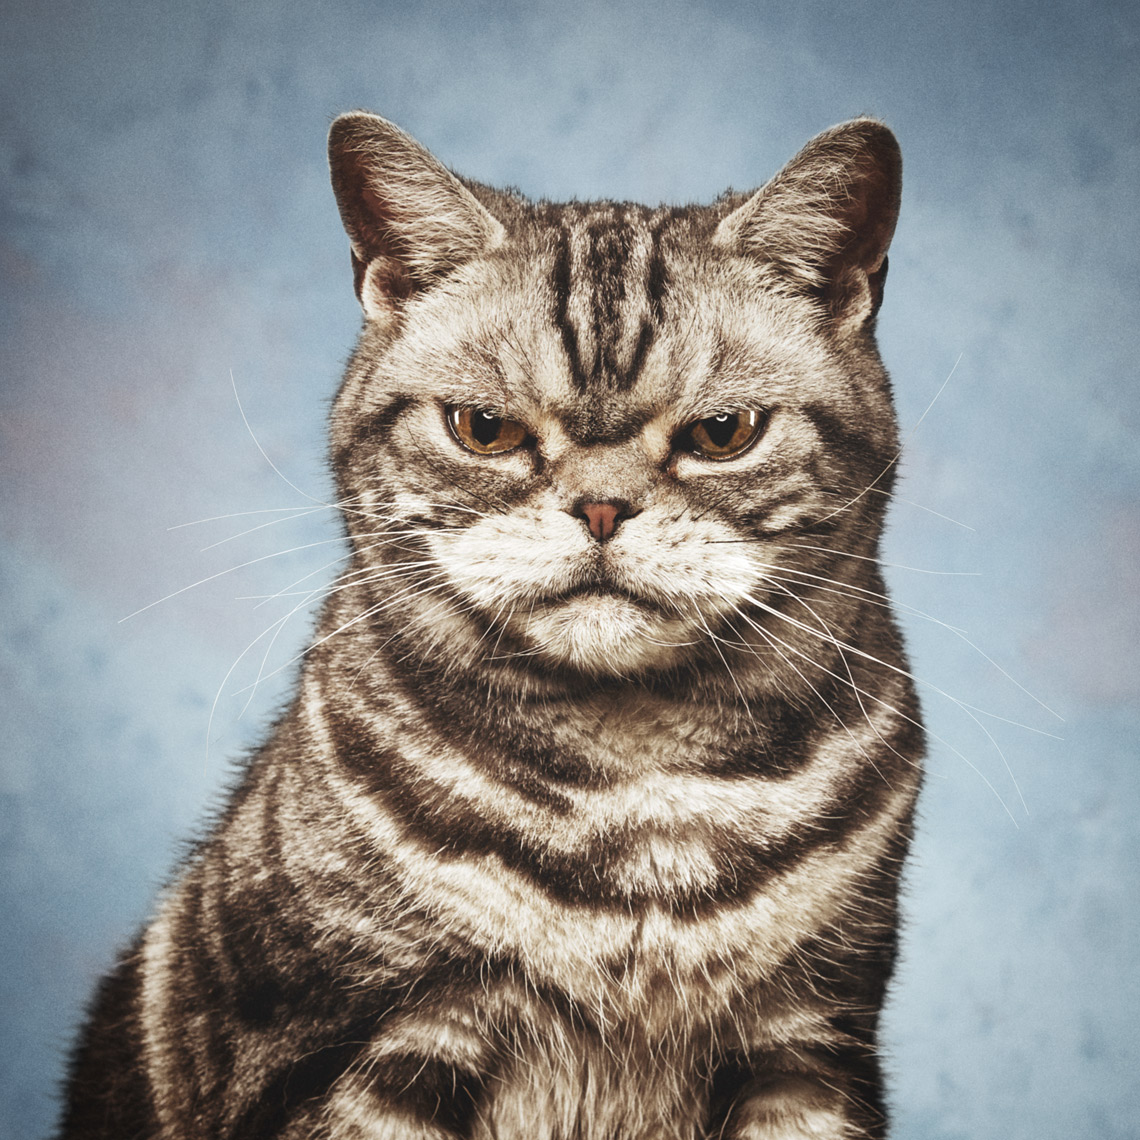 Cat yearbook portrait on retro blue background